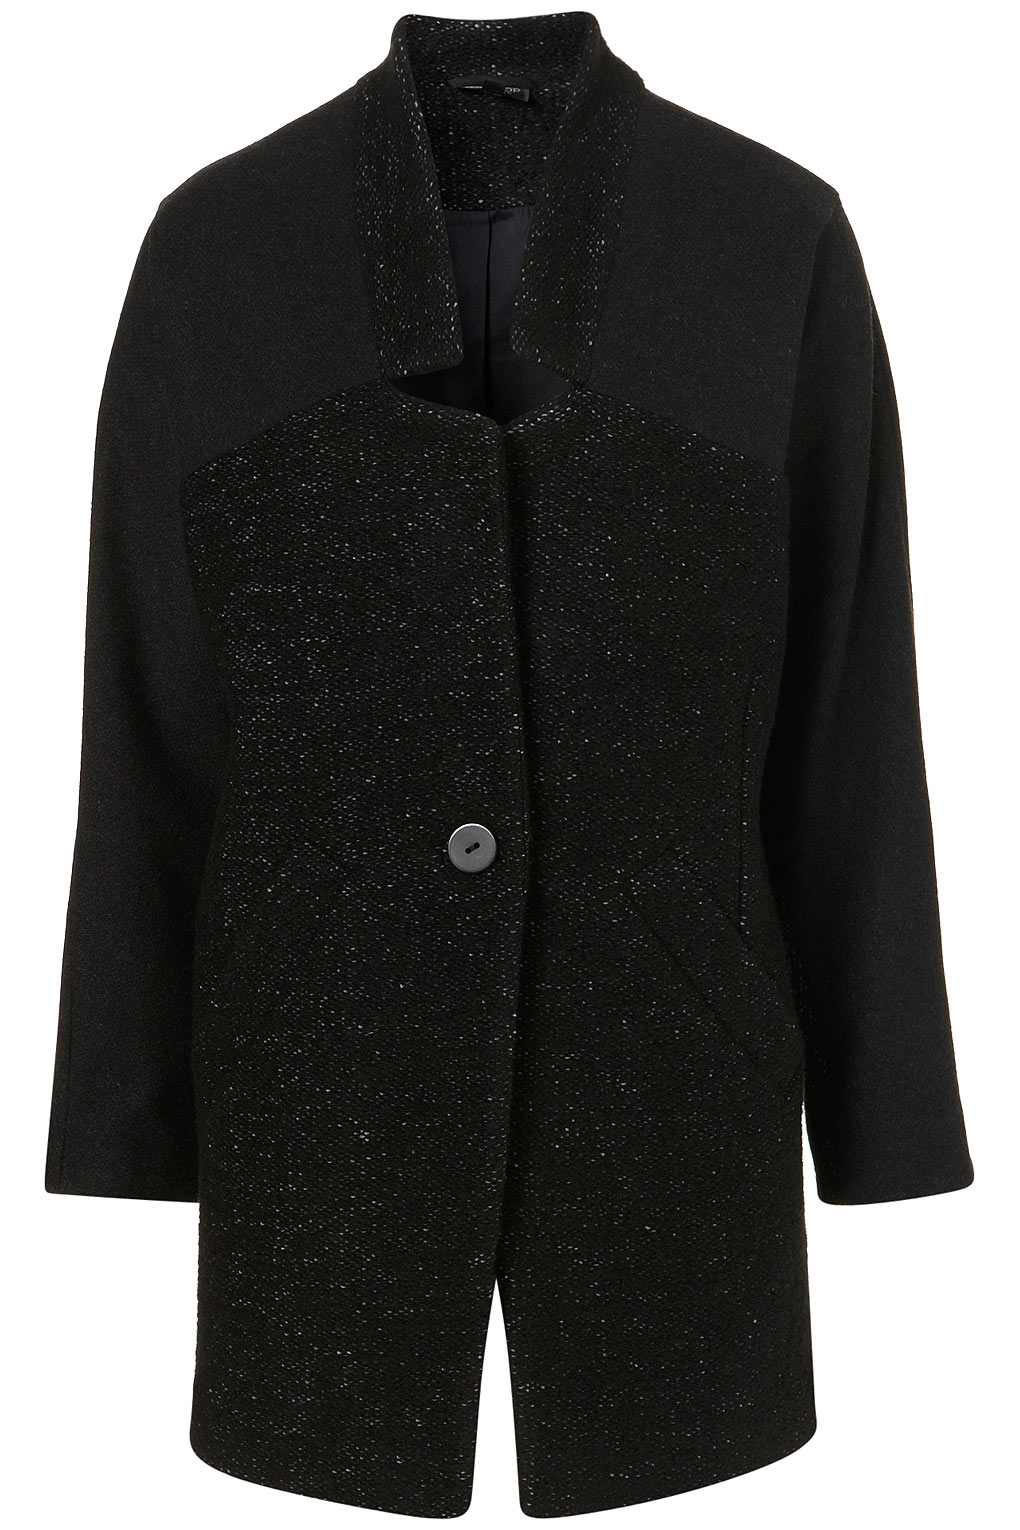 Topshop Contrast Raglin Tweed Boyfriend Coat in Black | Lyst